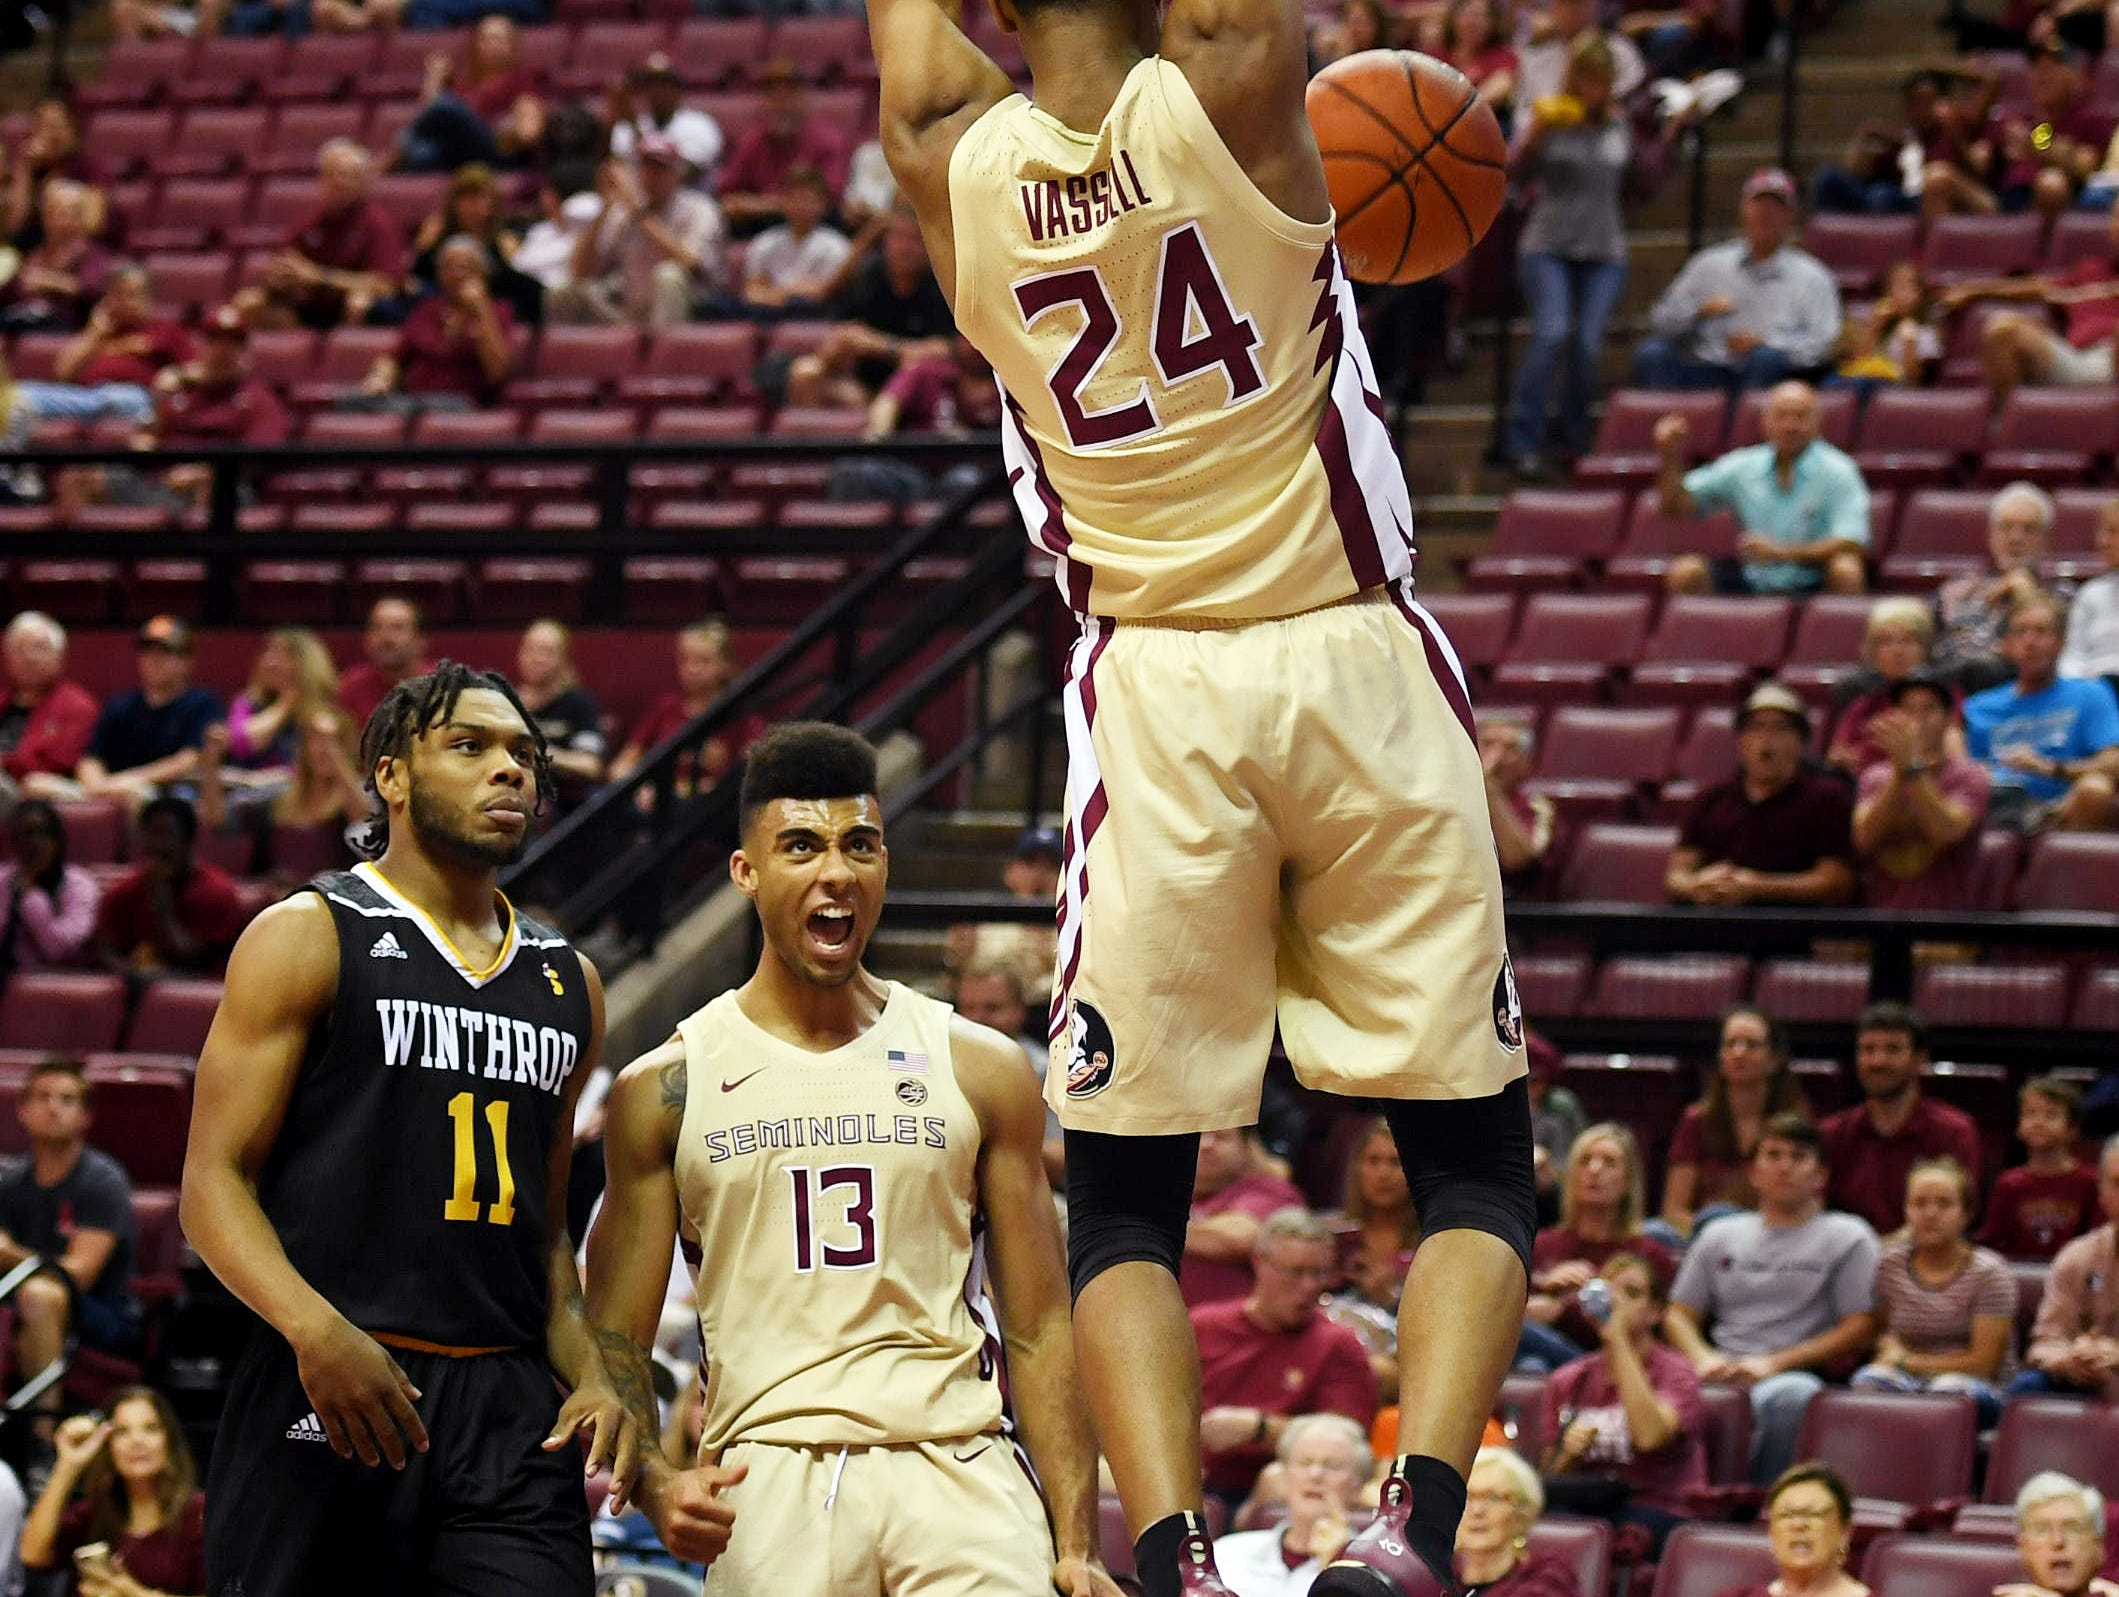 Jan 1, 2019; Tallahassee, FL, USA; Florida State Seminoles guard Devin Vassell (24) dunks the ball during the first half against the Winthrop Eagles at Donald L. Tucker Center. Mandatory Credit: Melina Myers-USA TODAY Sports